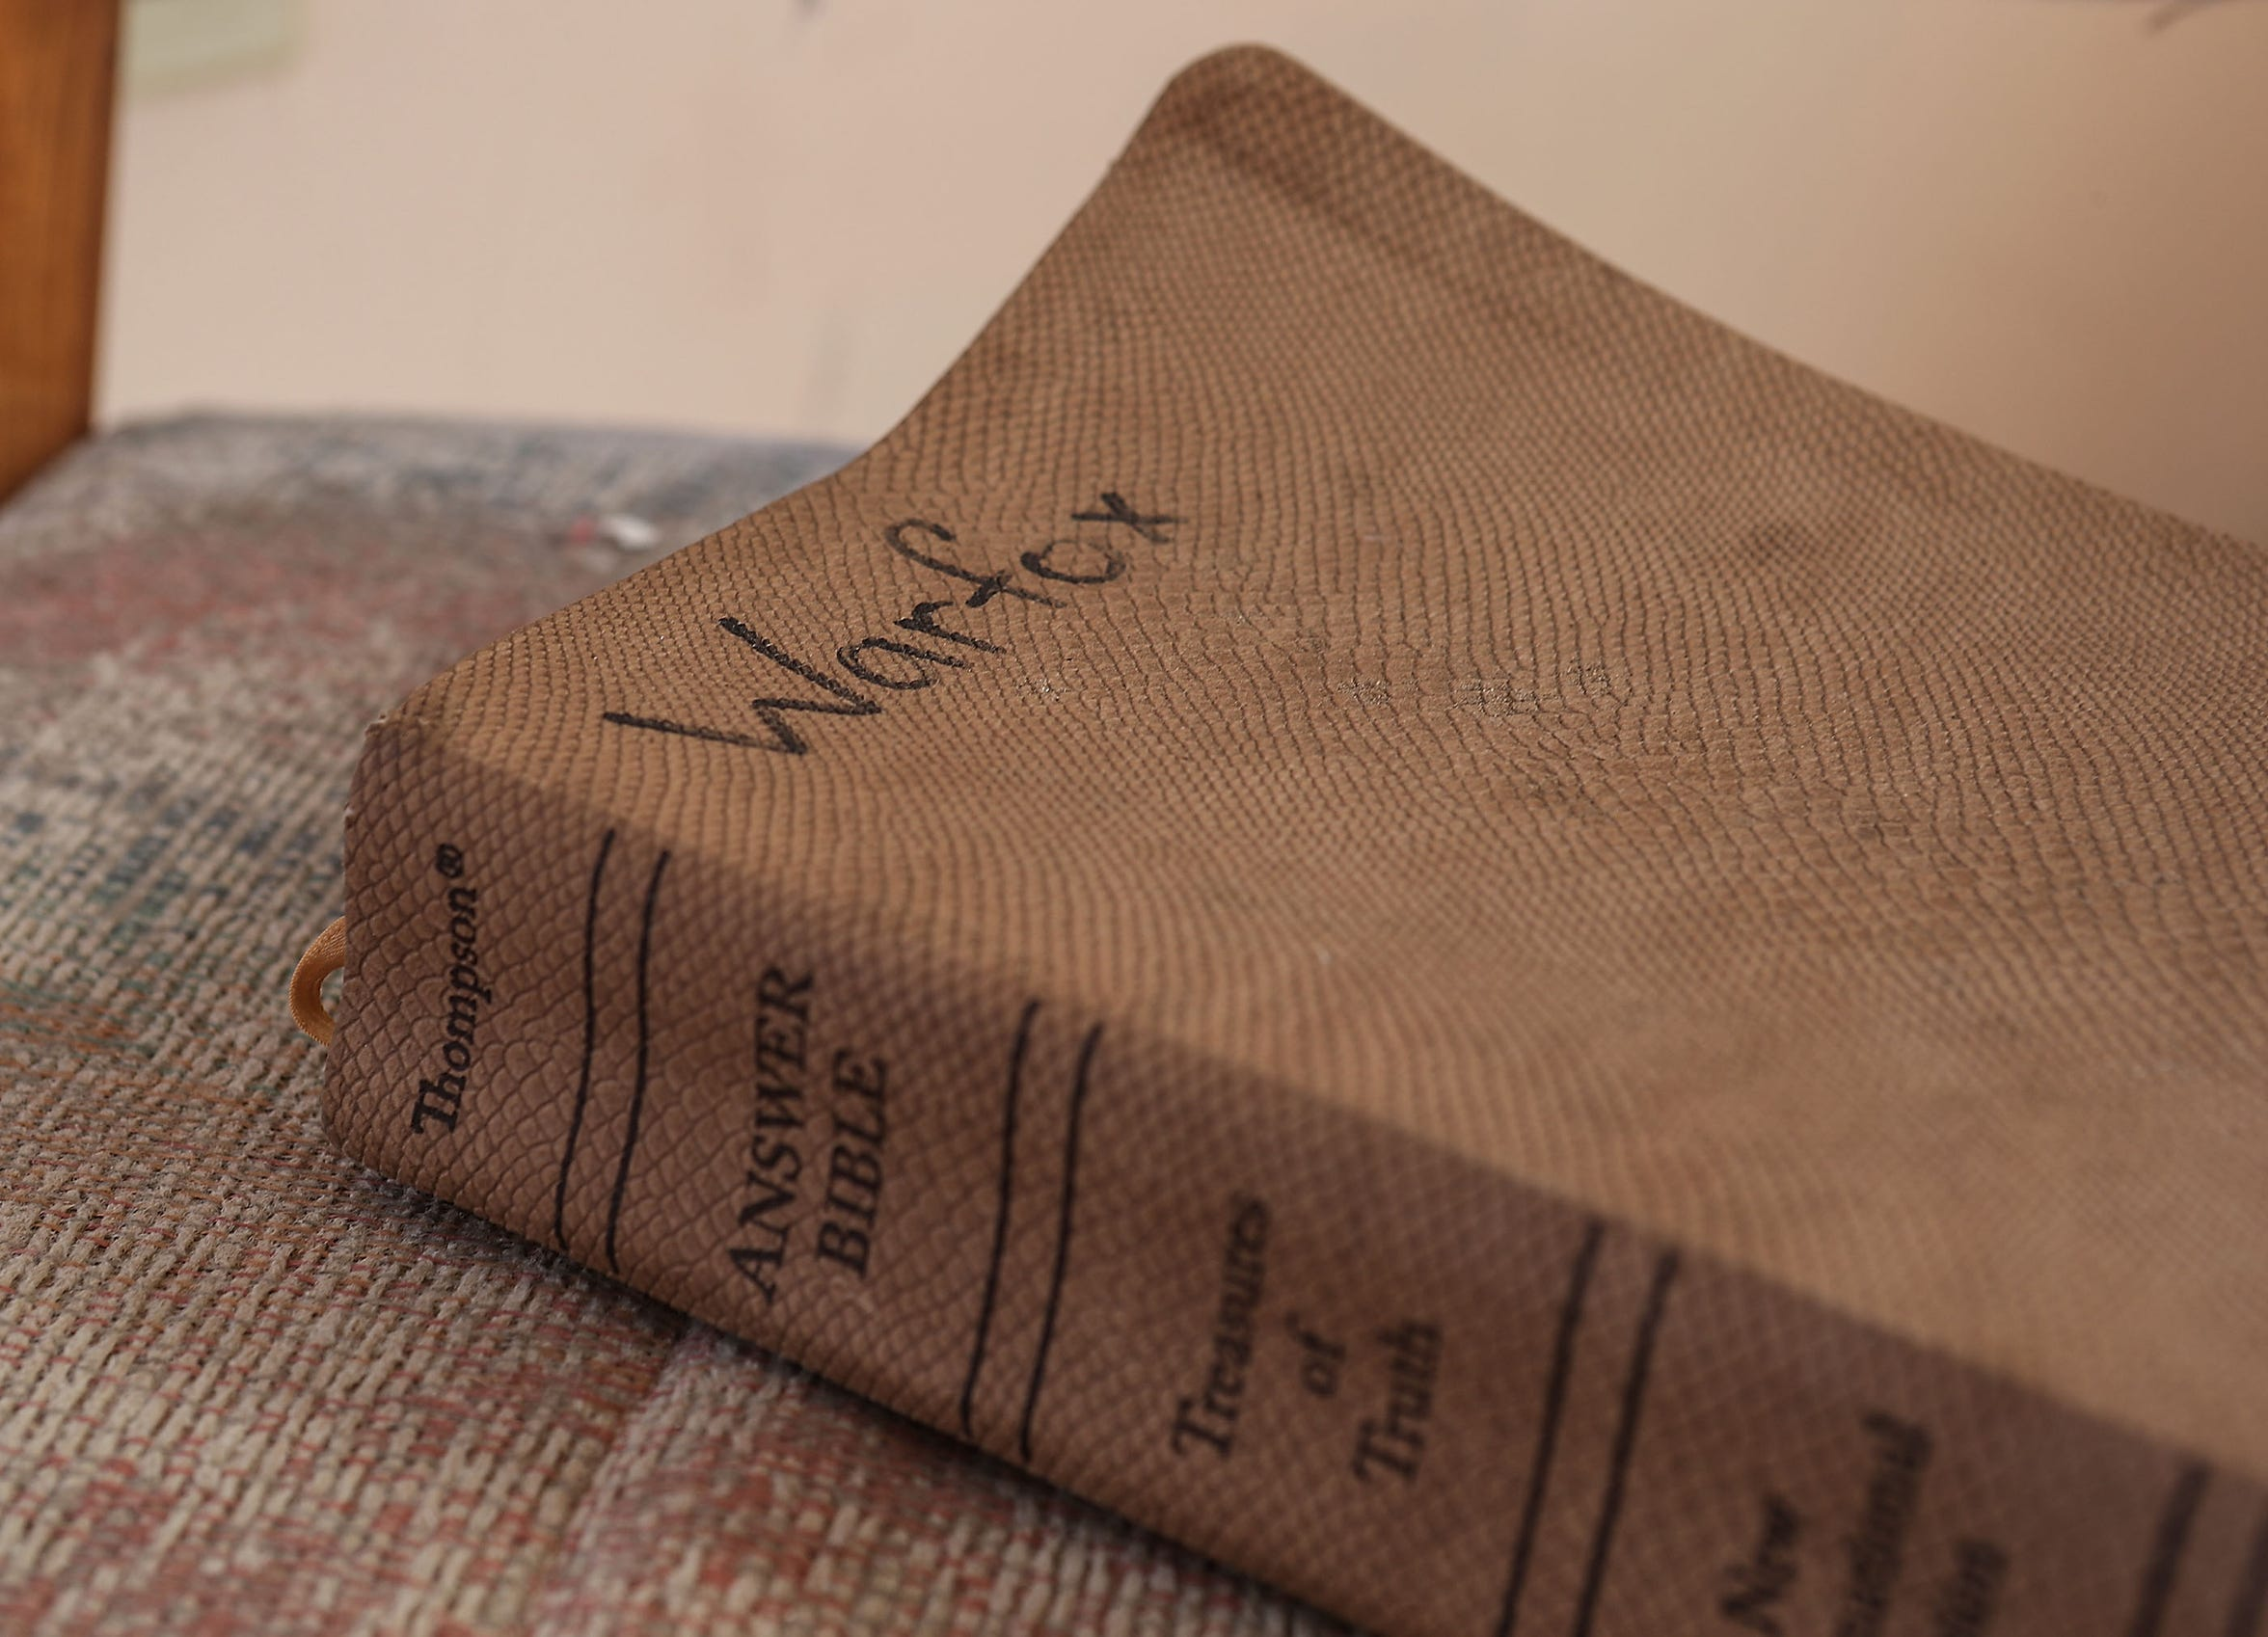 A bible with the Warfox name in an abandoned home in Landers, California where the Warfox family had been living, September 20, 2018.